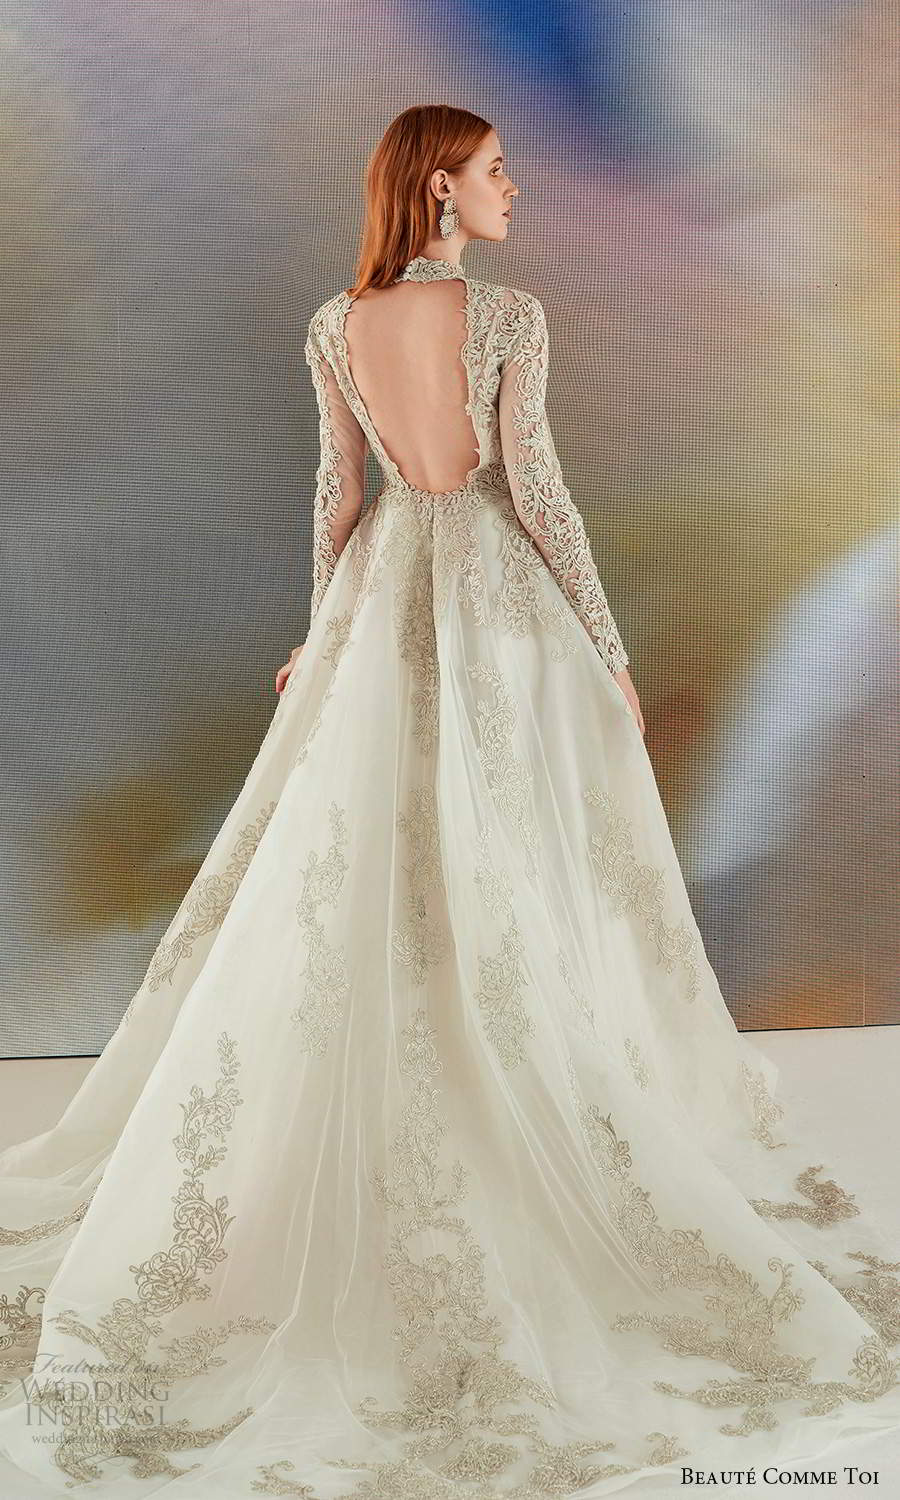 beaute comme toi fall 2021 bridal long sleeves high neckline fully embellished a line ball gown wedding dress chapel train gold keyhole back (2) bv